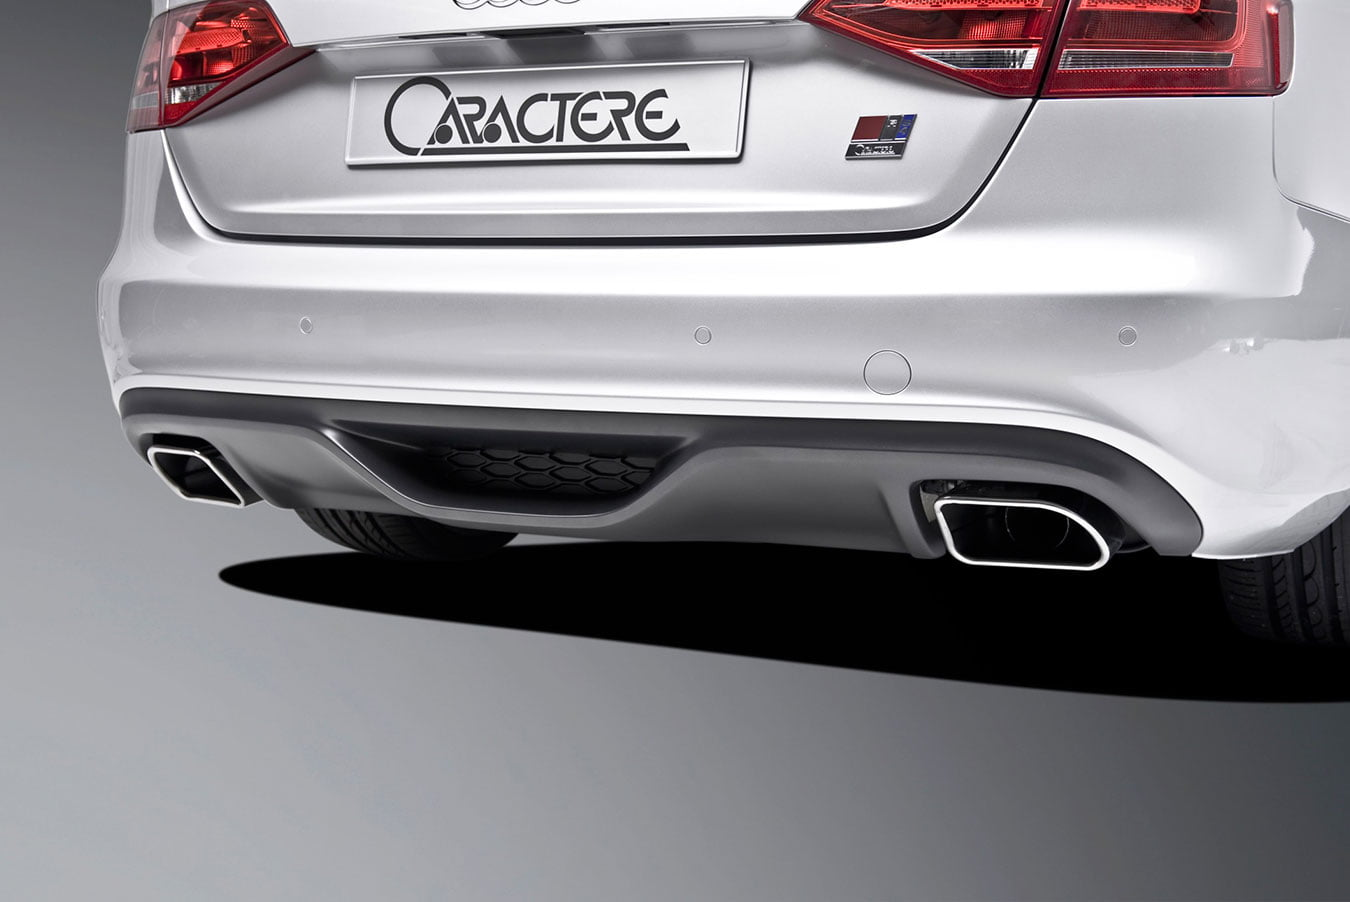 Caractere Rear Diffuser with 2 Mufflers, fits Audi A4 B8.0 S-Line 2.0 TDI / 1.8 TFSI